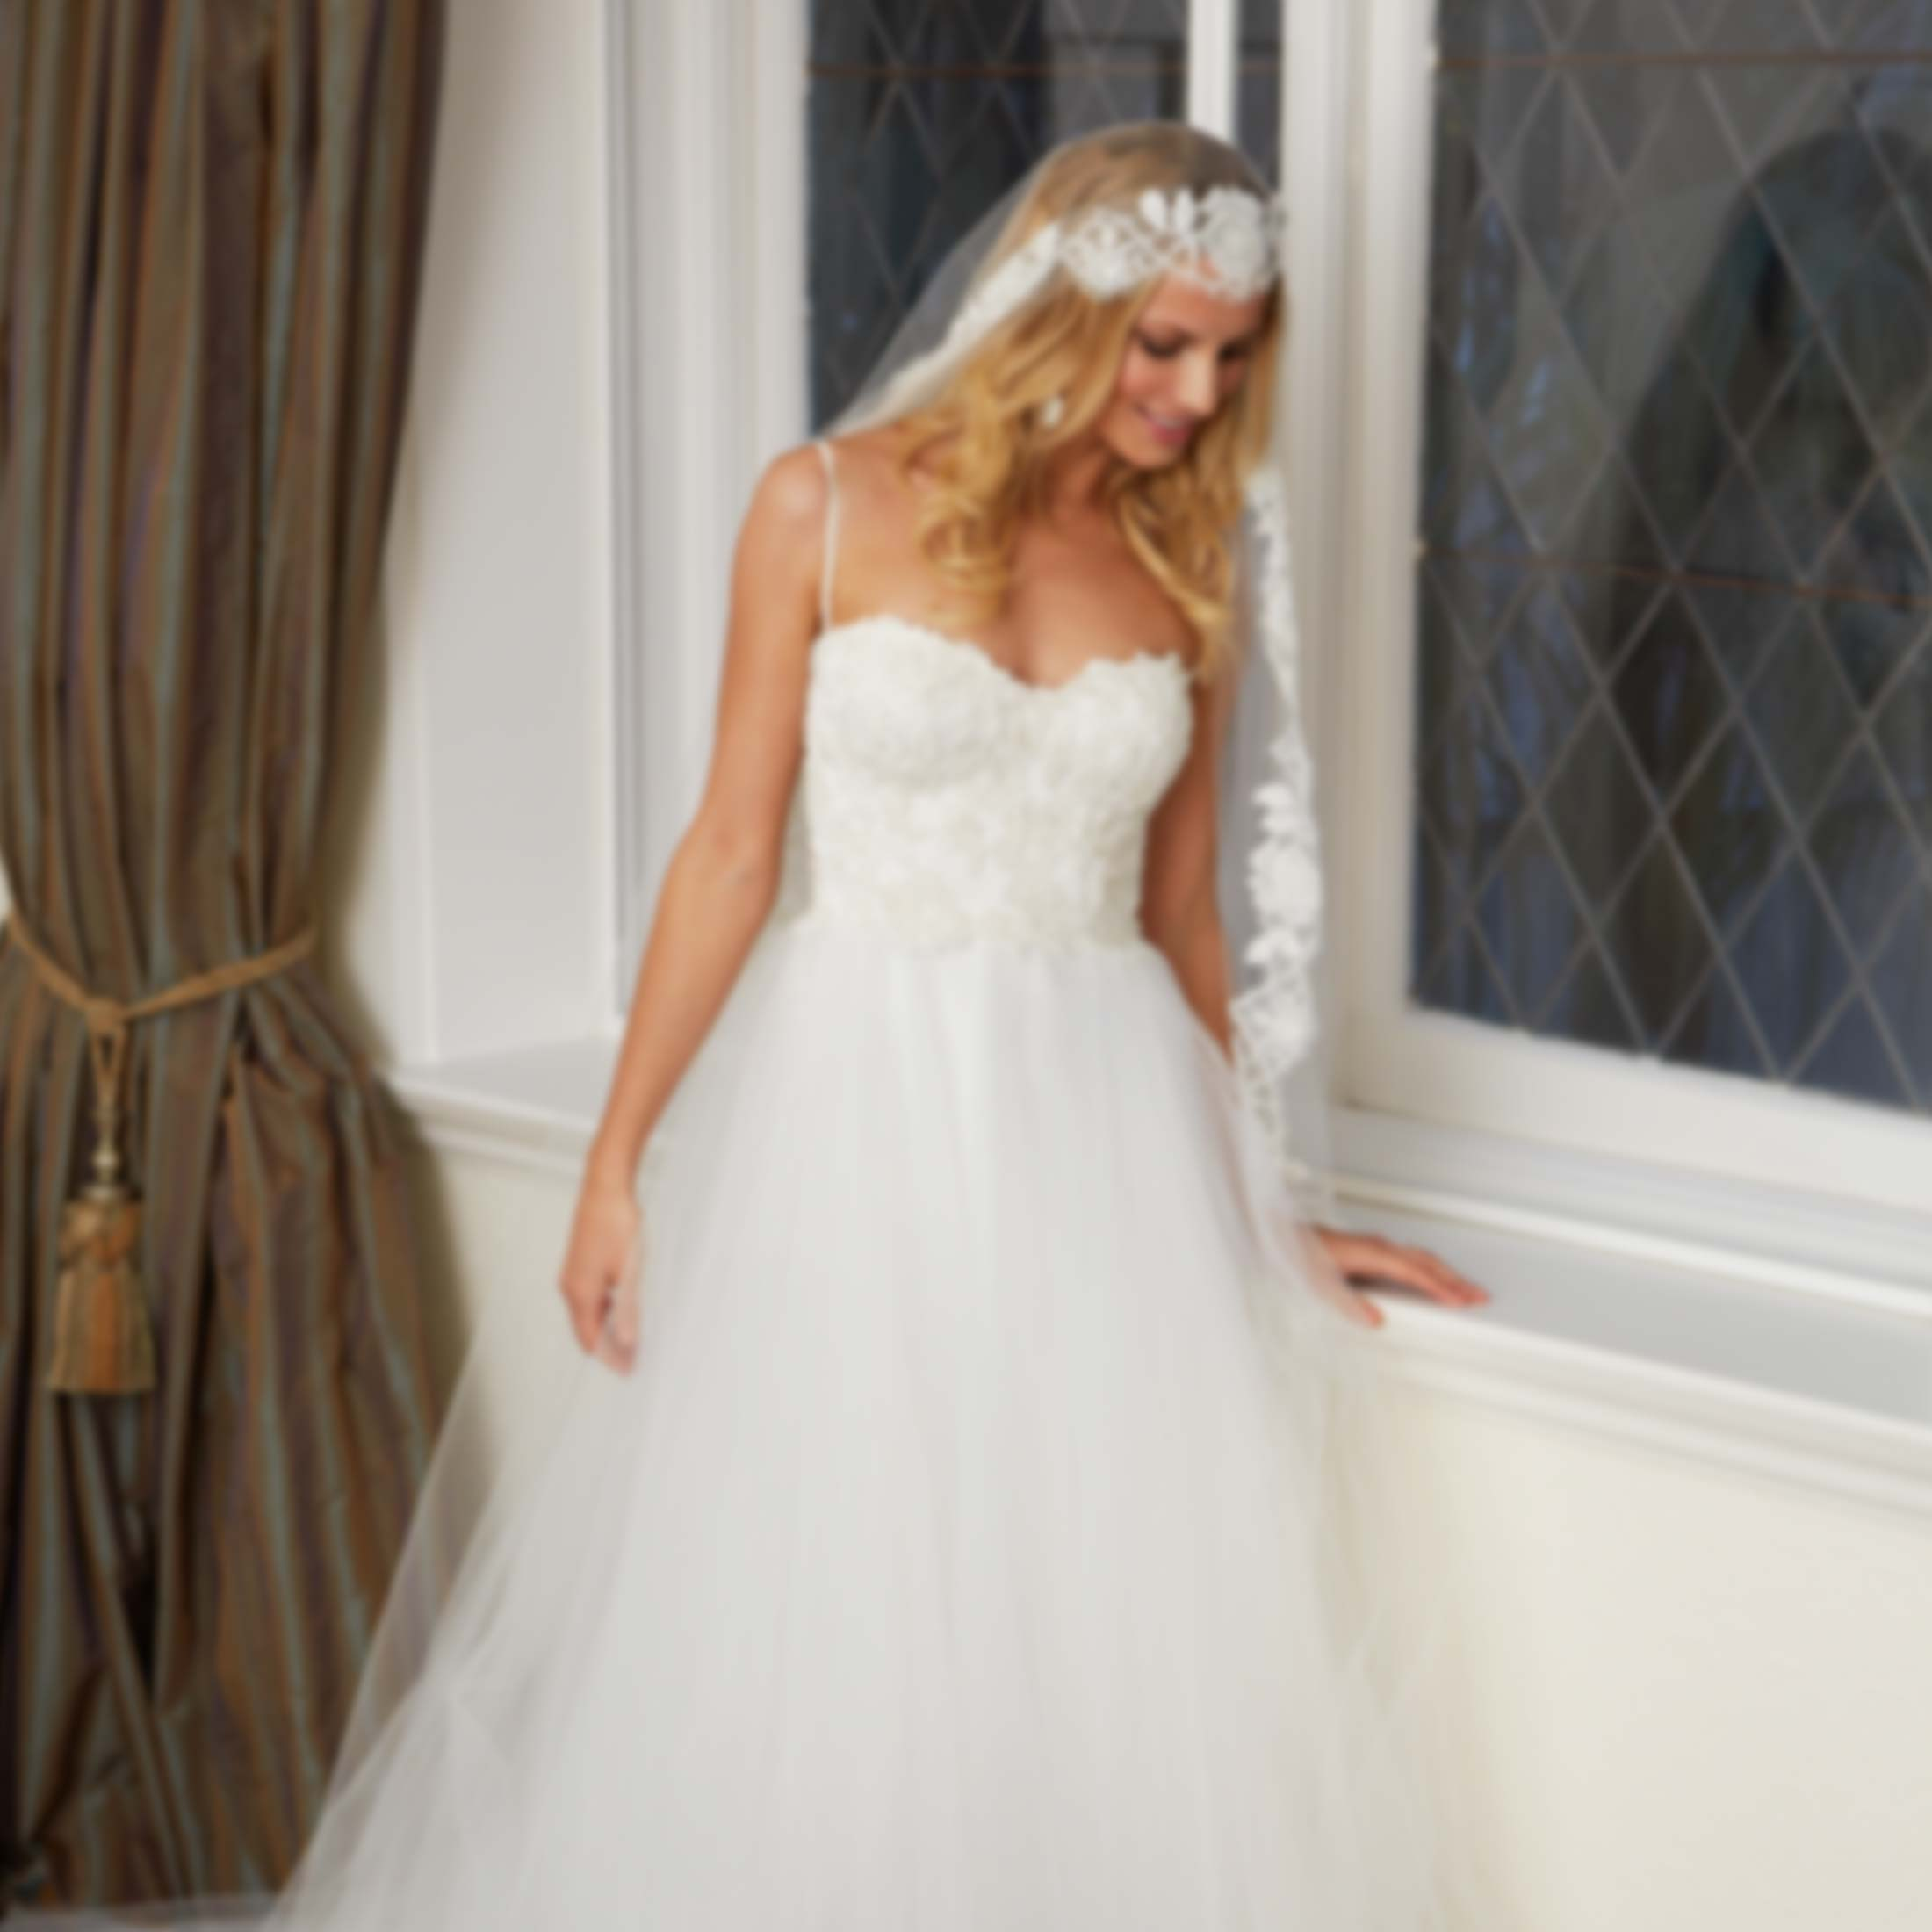 Lisa gowing bespoke wedding dresses by lisa gowing collections ombrellifo Gallery